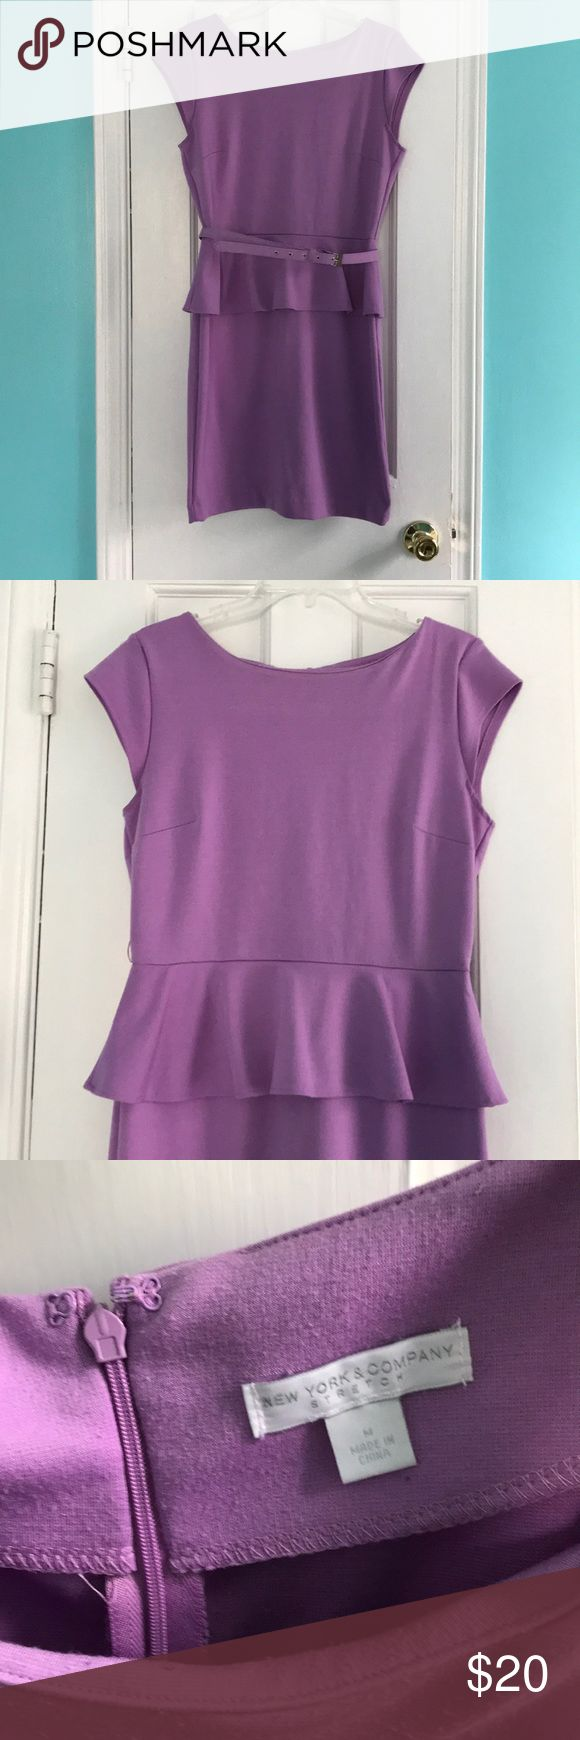 "Purple Peplum work dress Comfortable work or party dress Peplum style with belt included New York & Company size Medium  Good used condition, no stains, working zipper and clasp Machine wash, smoke free home Length 36"" New York & Company Dresses Midi"